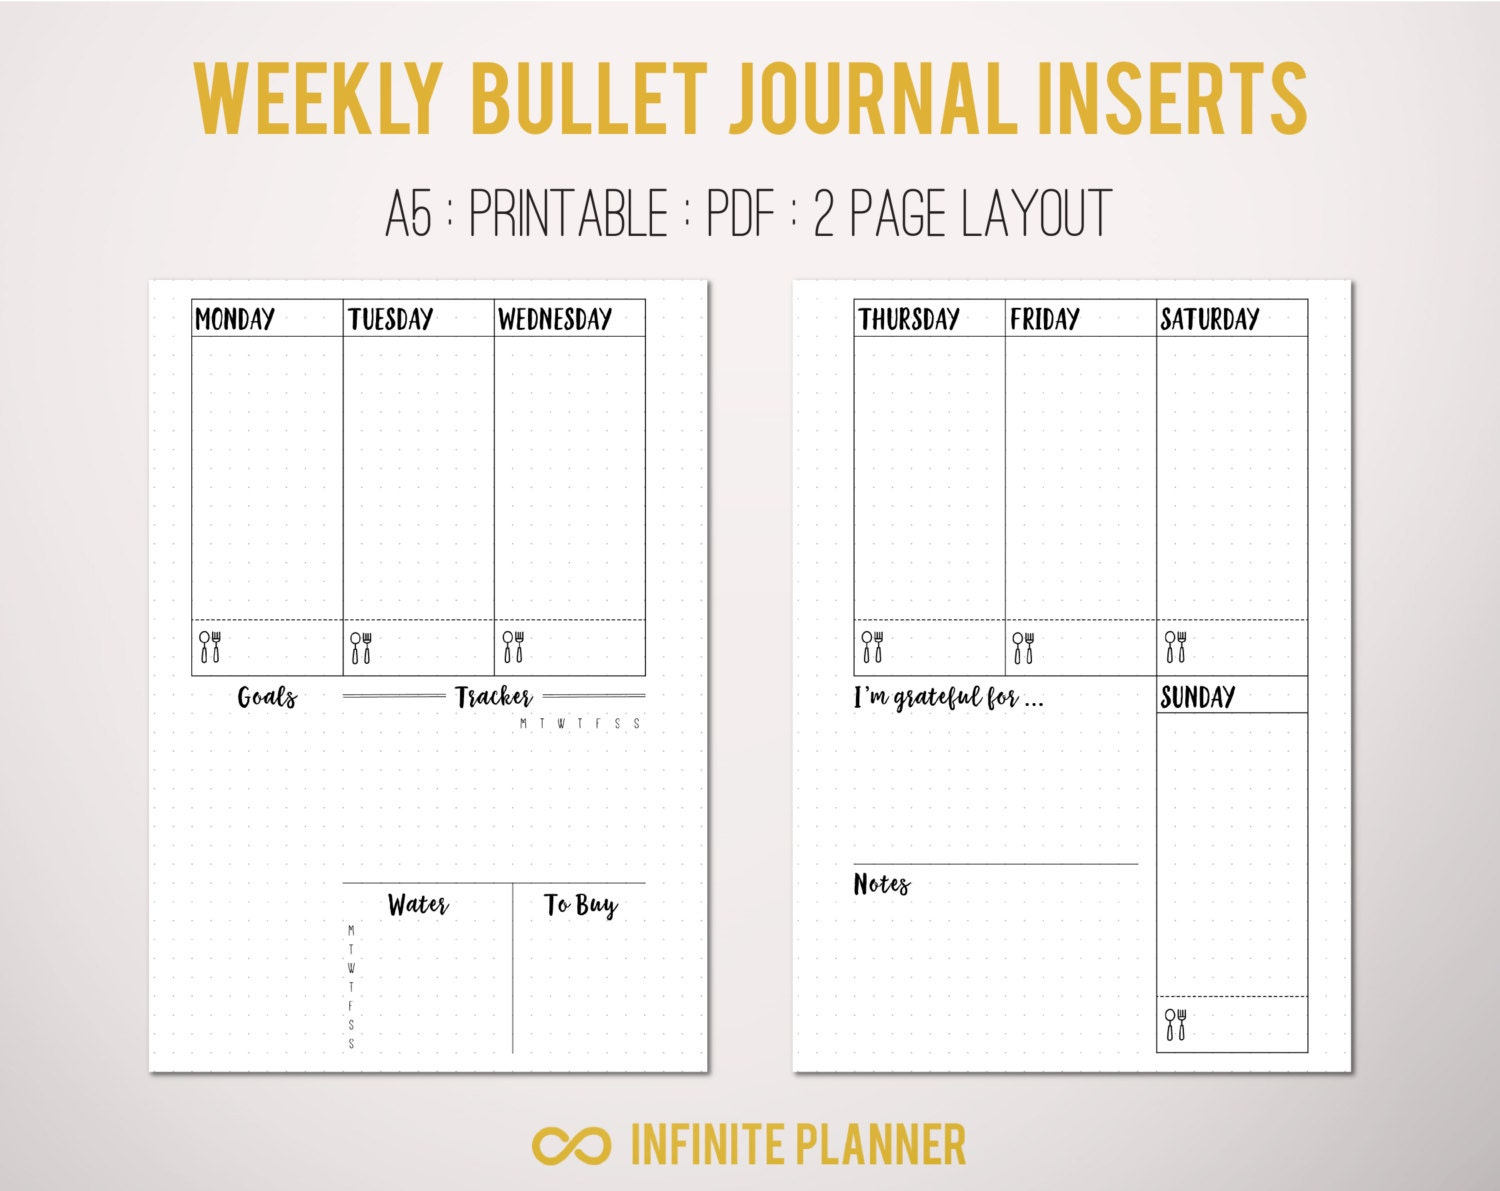 Simplicity image intended for weekly journal template